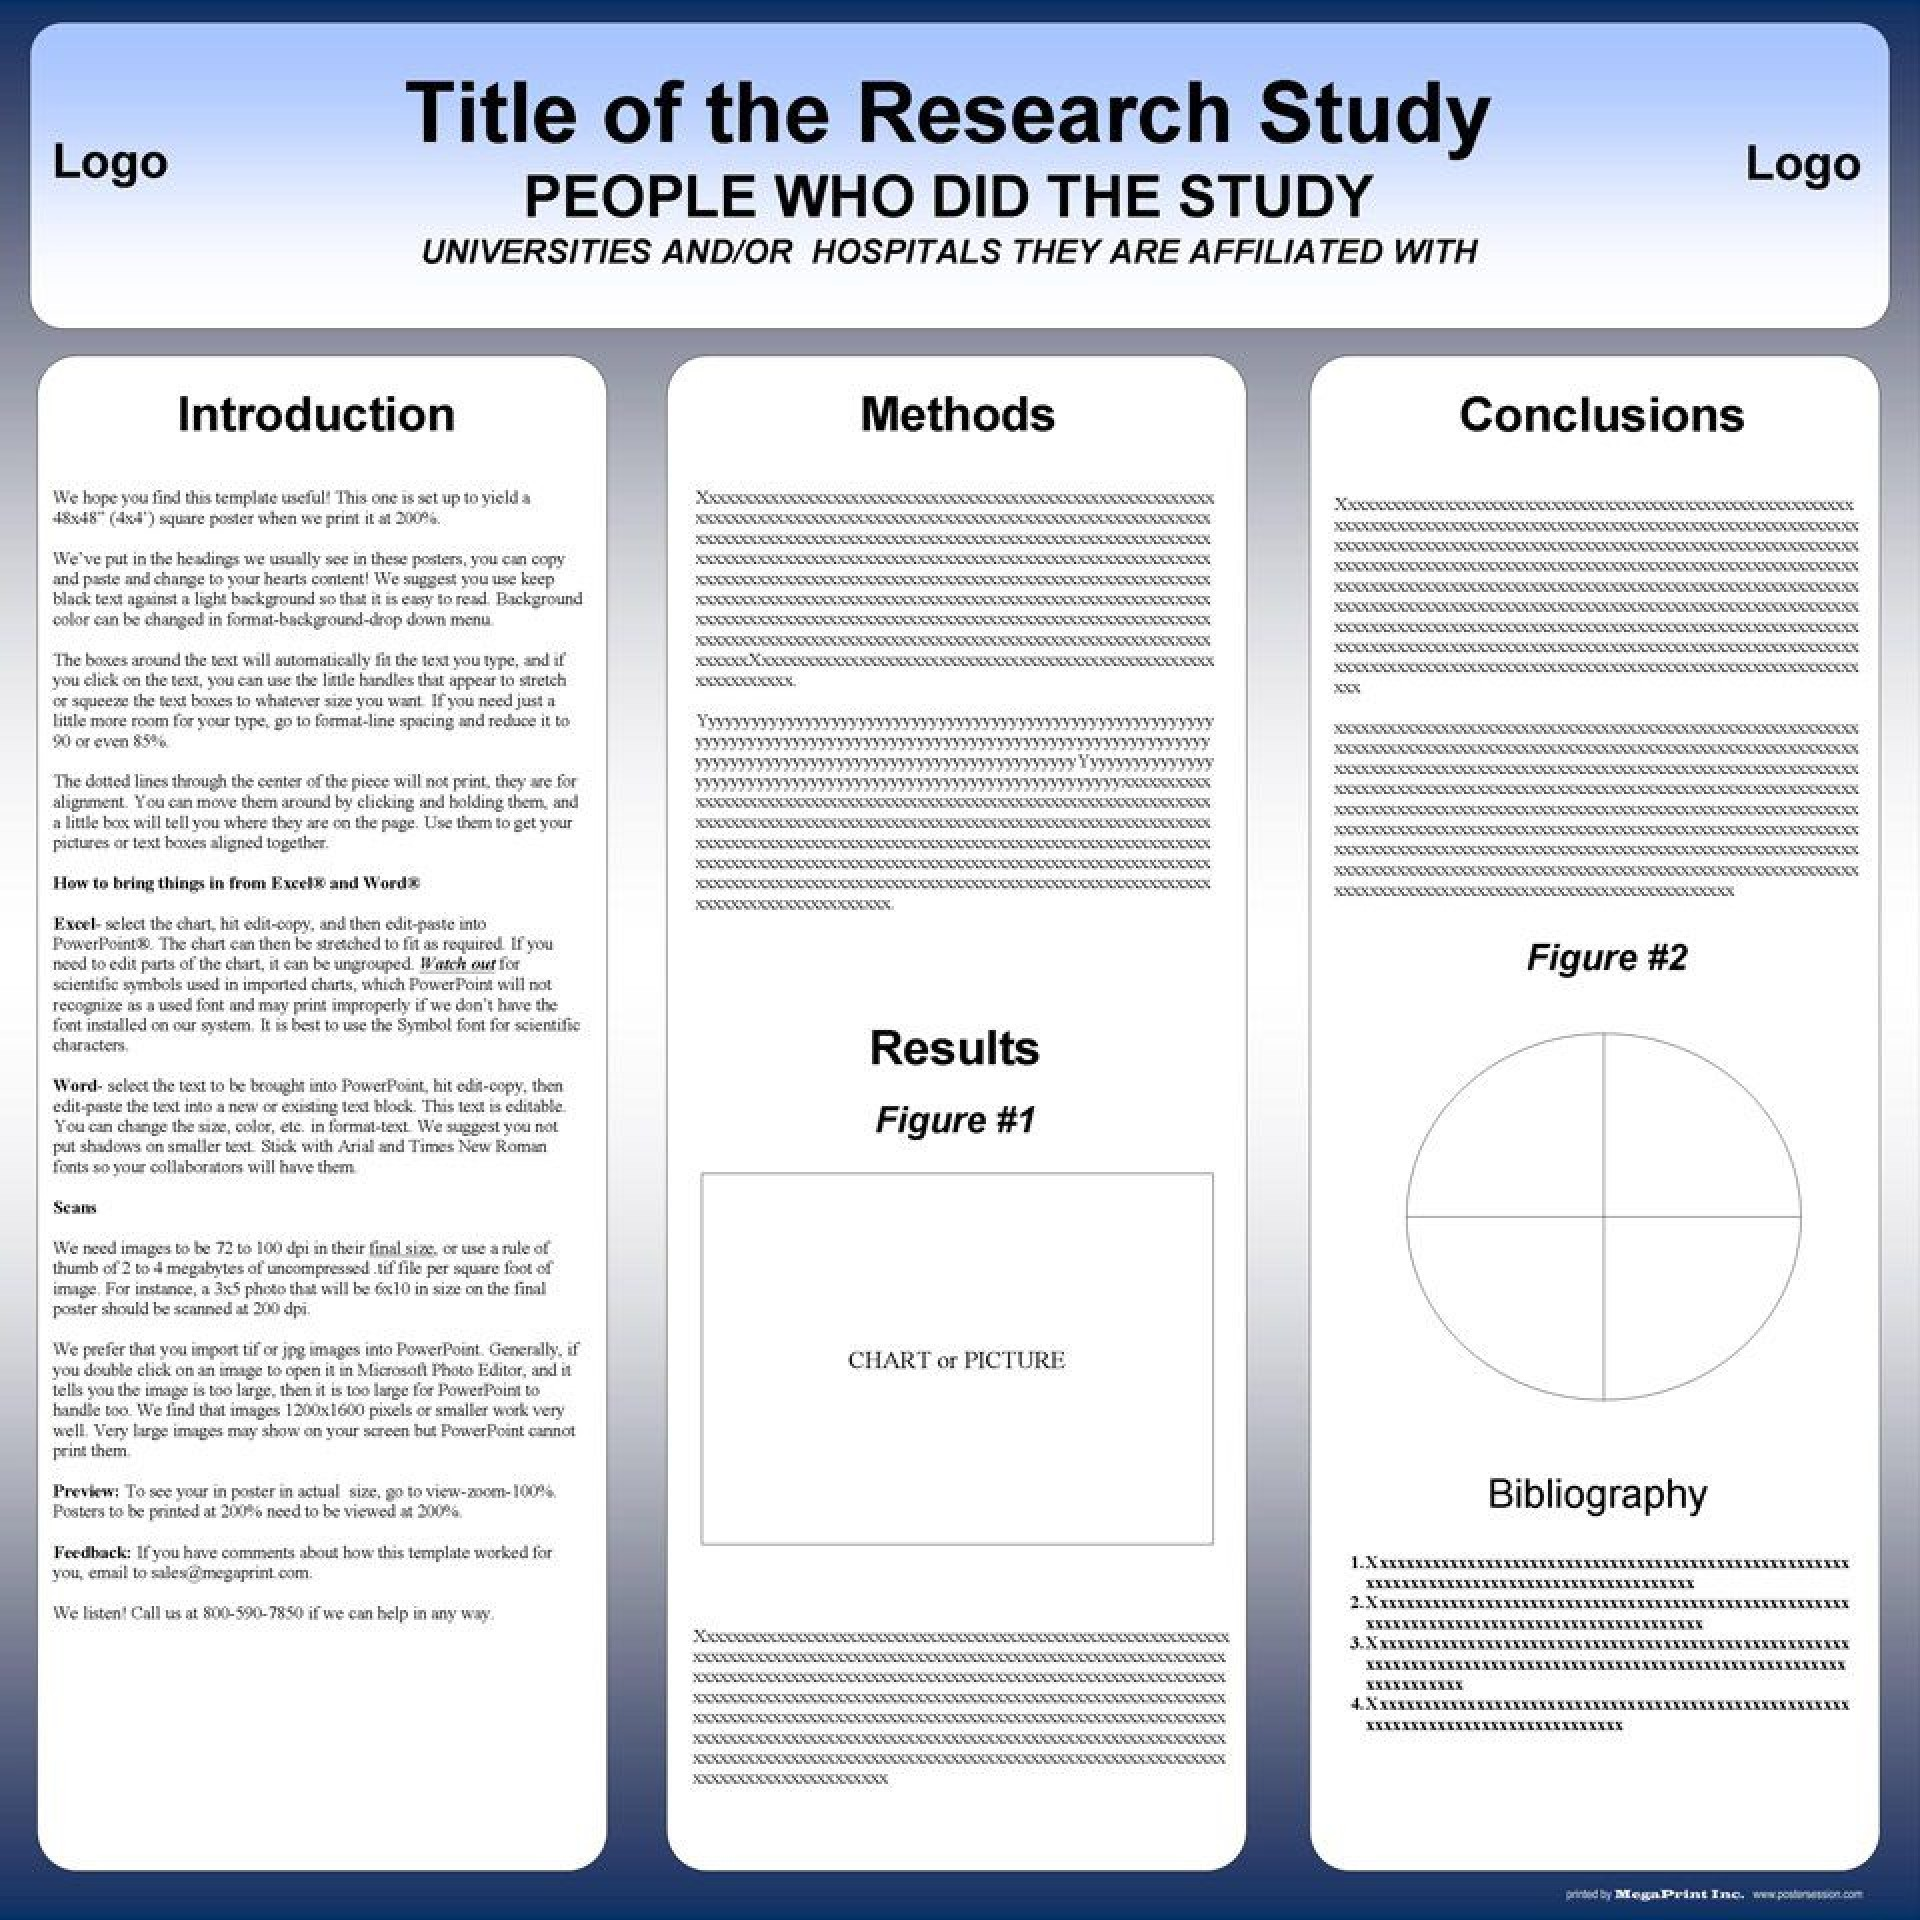 003 Awful Scientific Poster Presentation Template Free Download Example 1920